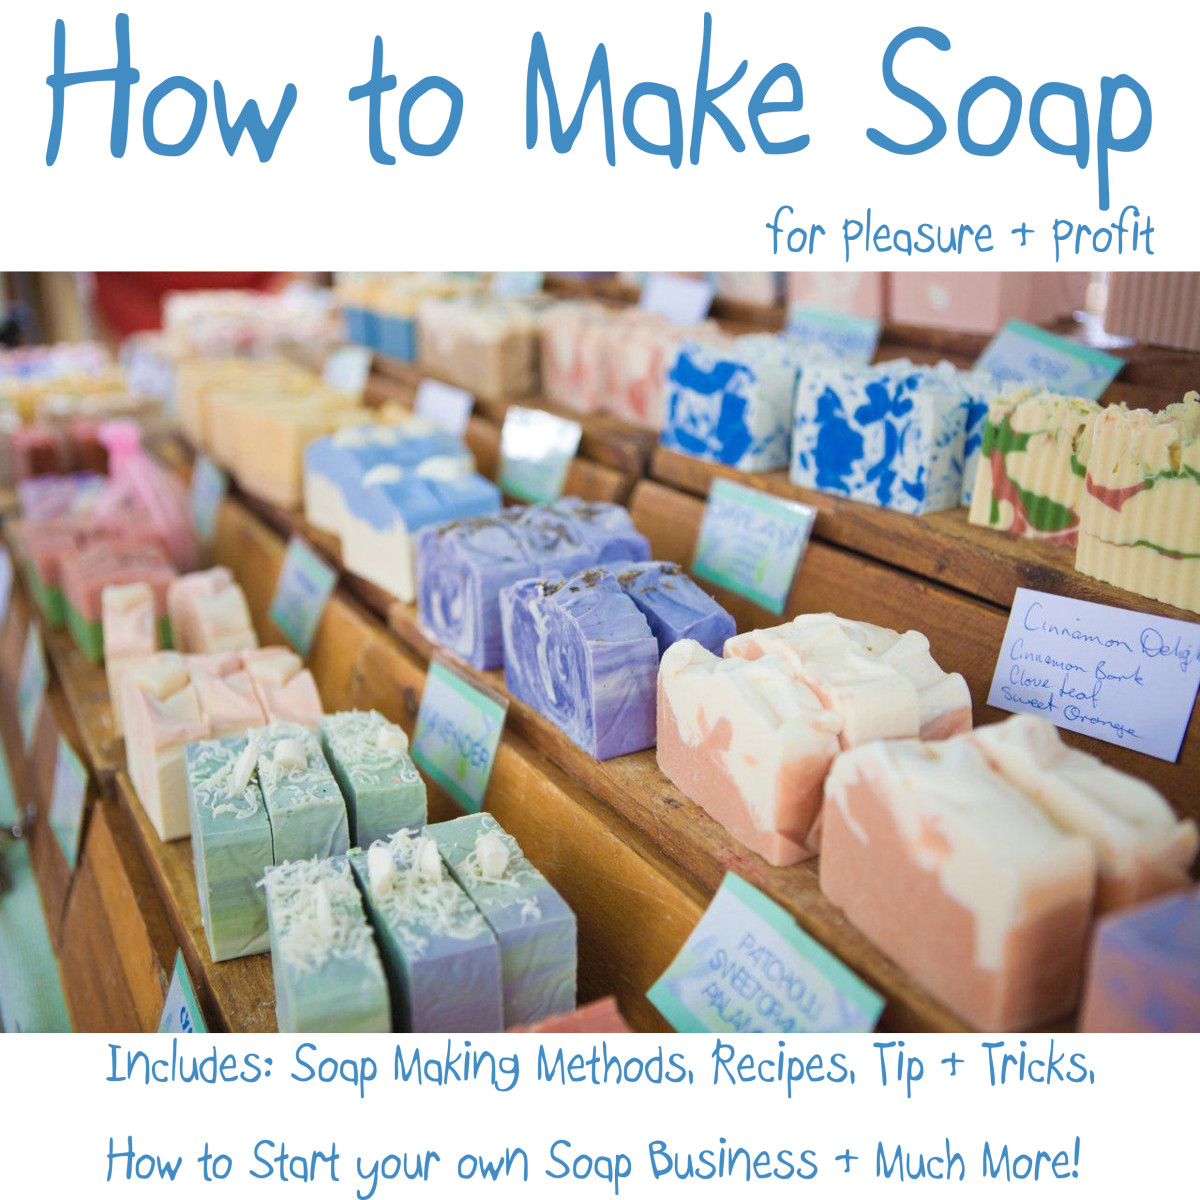 first-step-to-making-your-own-soap